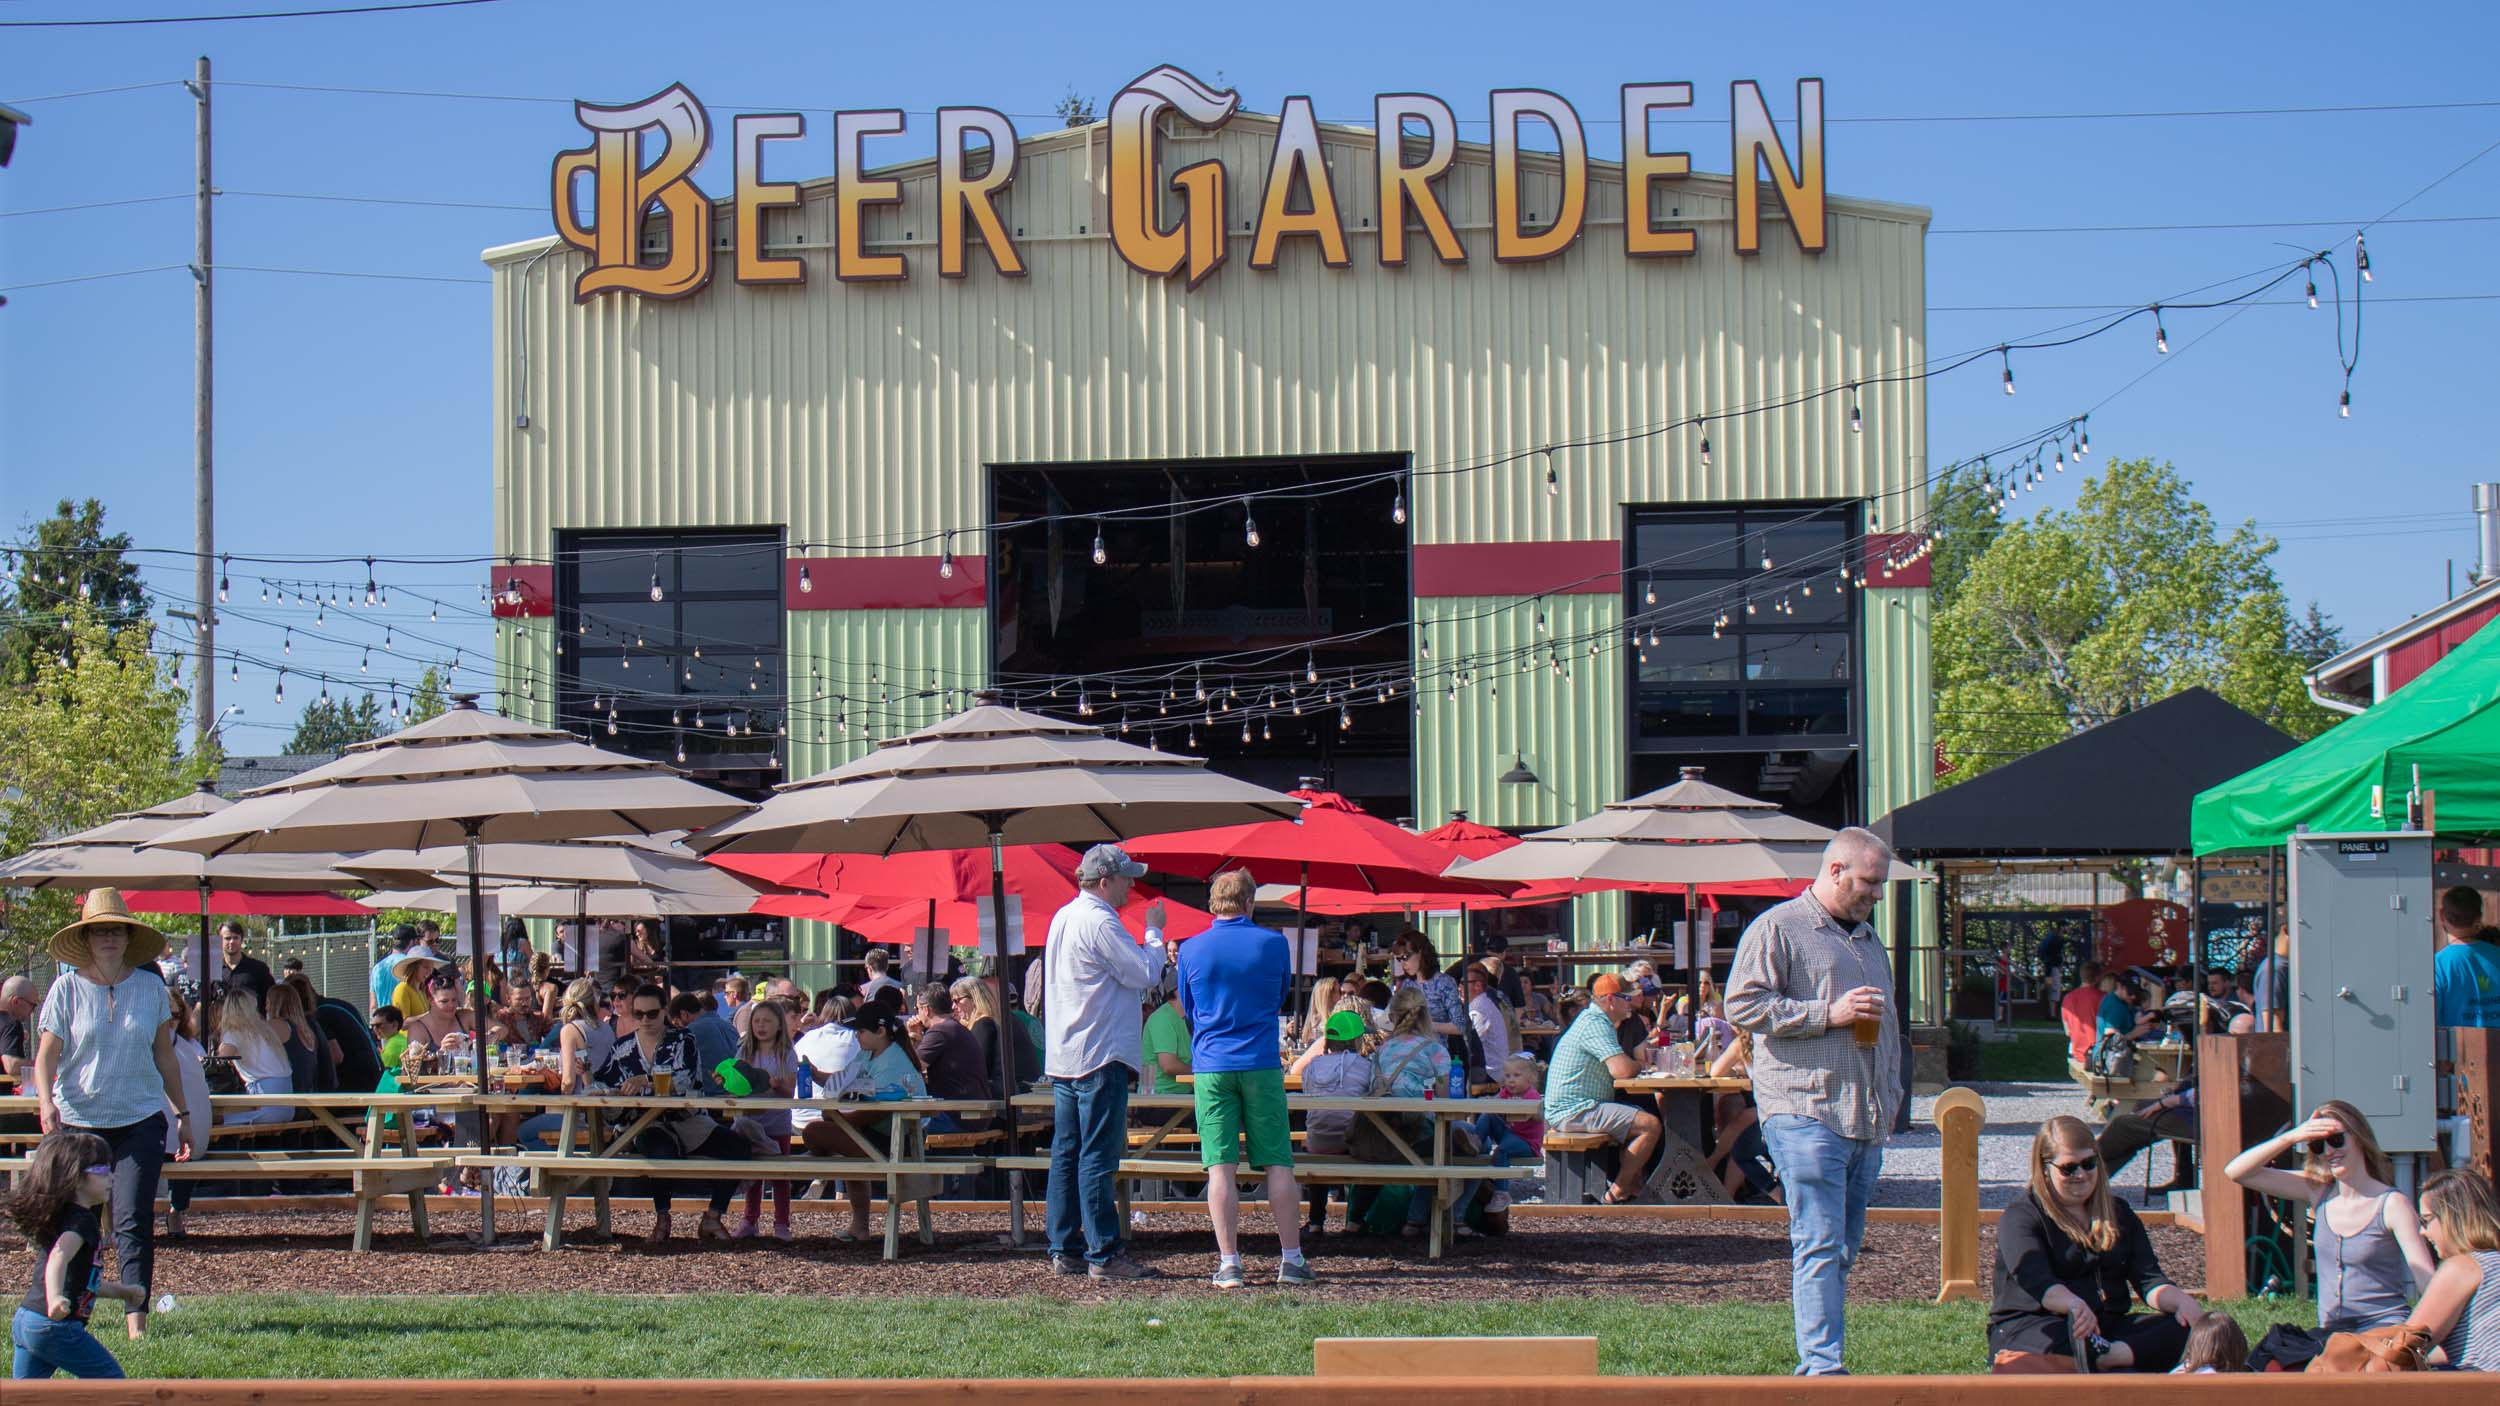 "BEER GARDEN - ""RELAXED ATMOSPHERE, BEAUTIFUL BEER GARDEN, GREAT BEER! WORTH A TRIP TO BELLINGHAM.""The biggest beer garden in Bellingham does not disappoint. With a huge outdoor seating area filled with rows of shaded picnic tables, Adirondack chairs, a grassy play area, and a back lot full of outdoor games, there's enough to keep everyone entertained for an entire afternoon, evening, or both."